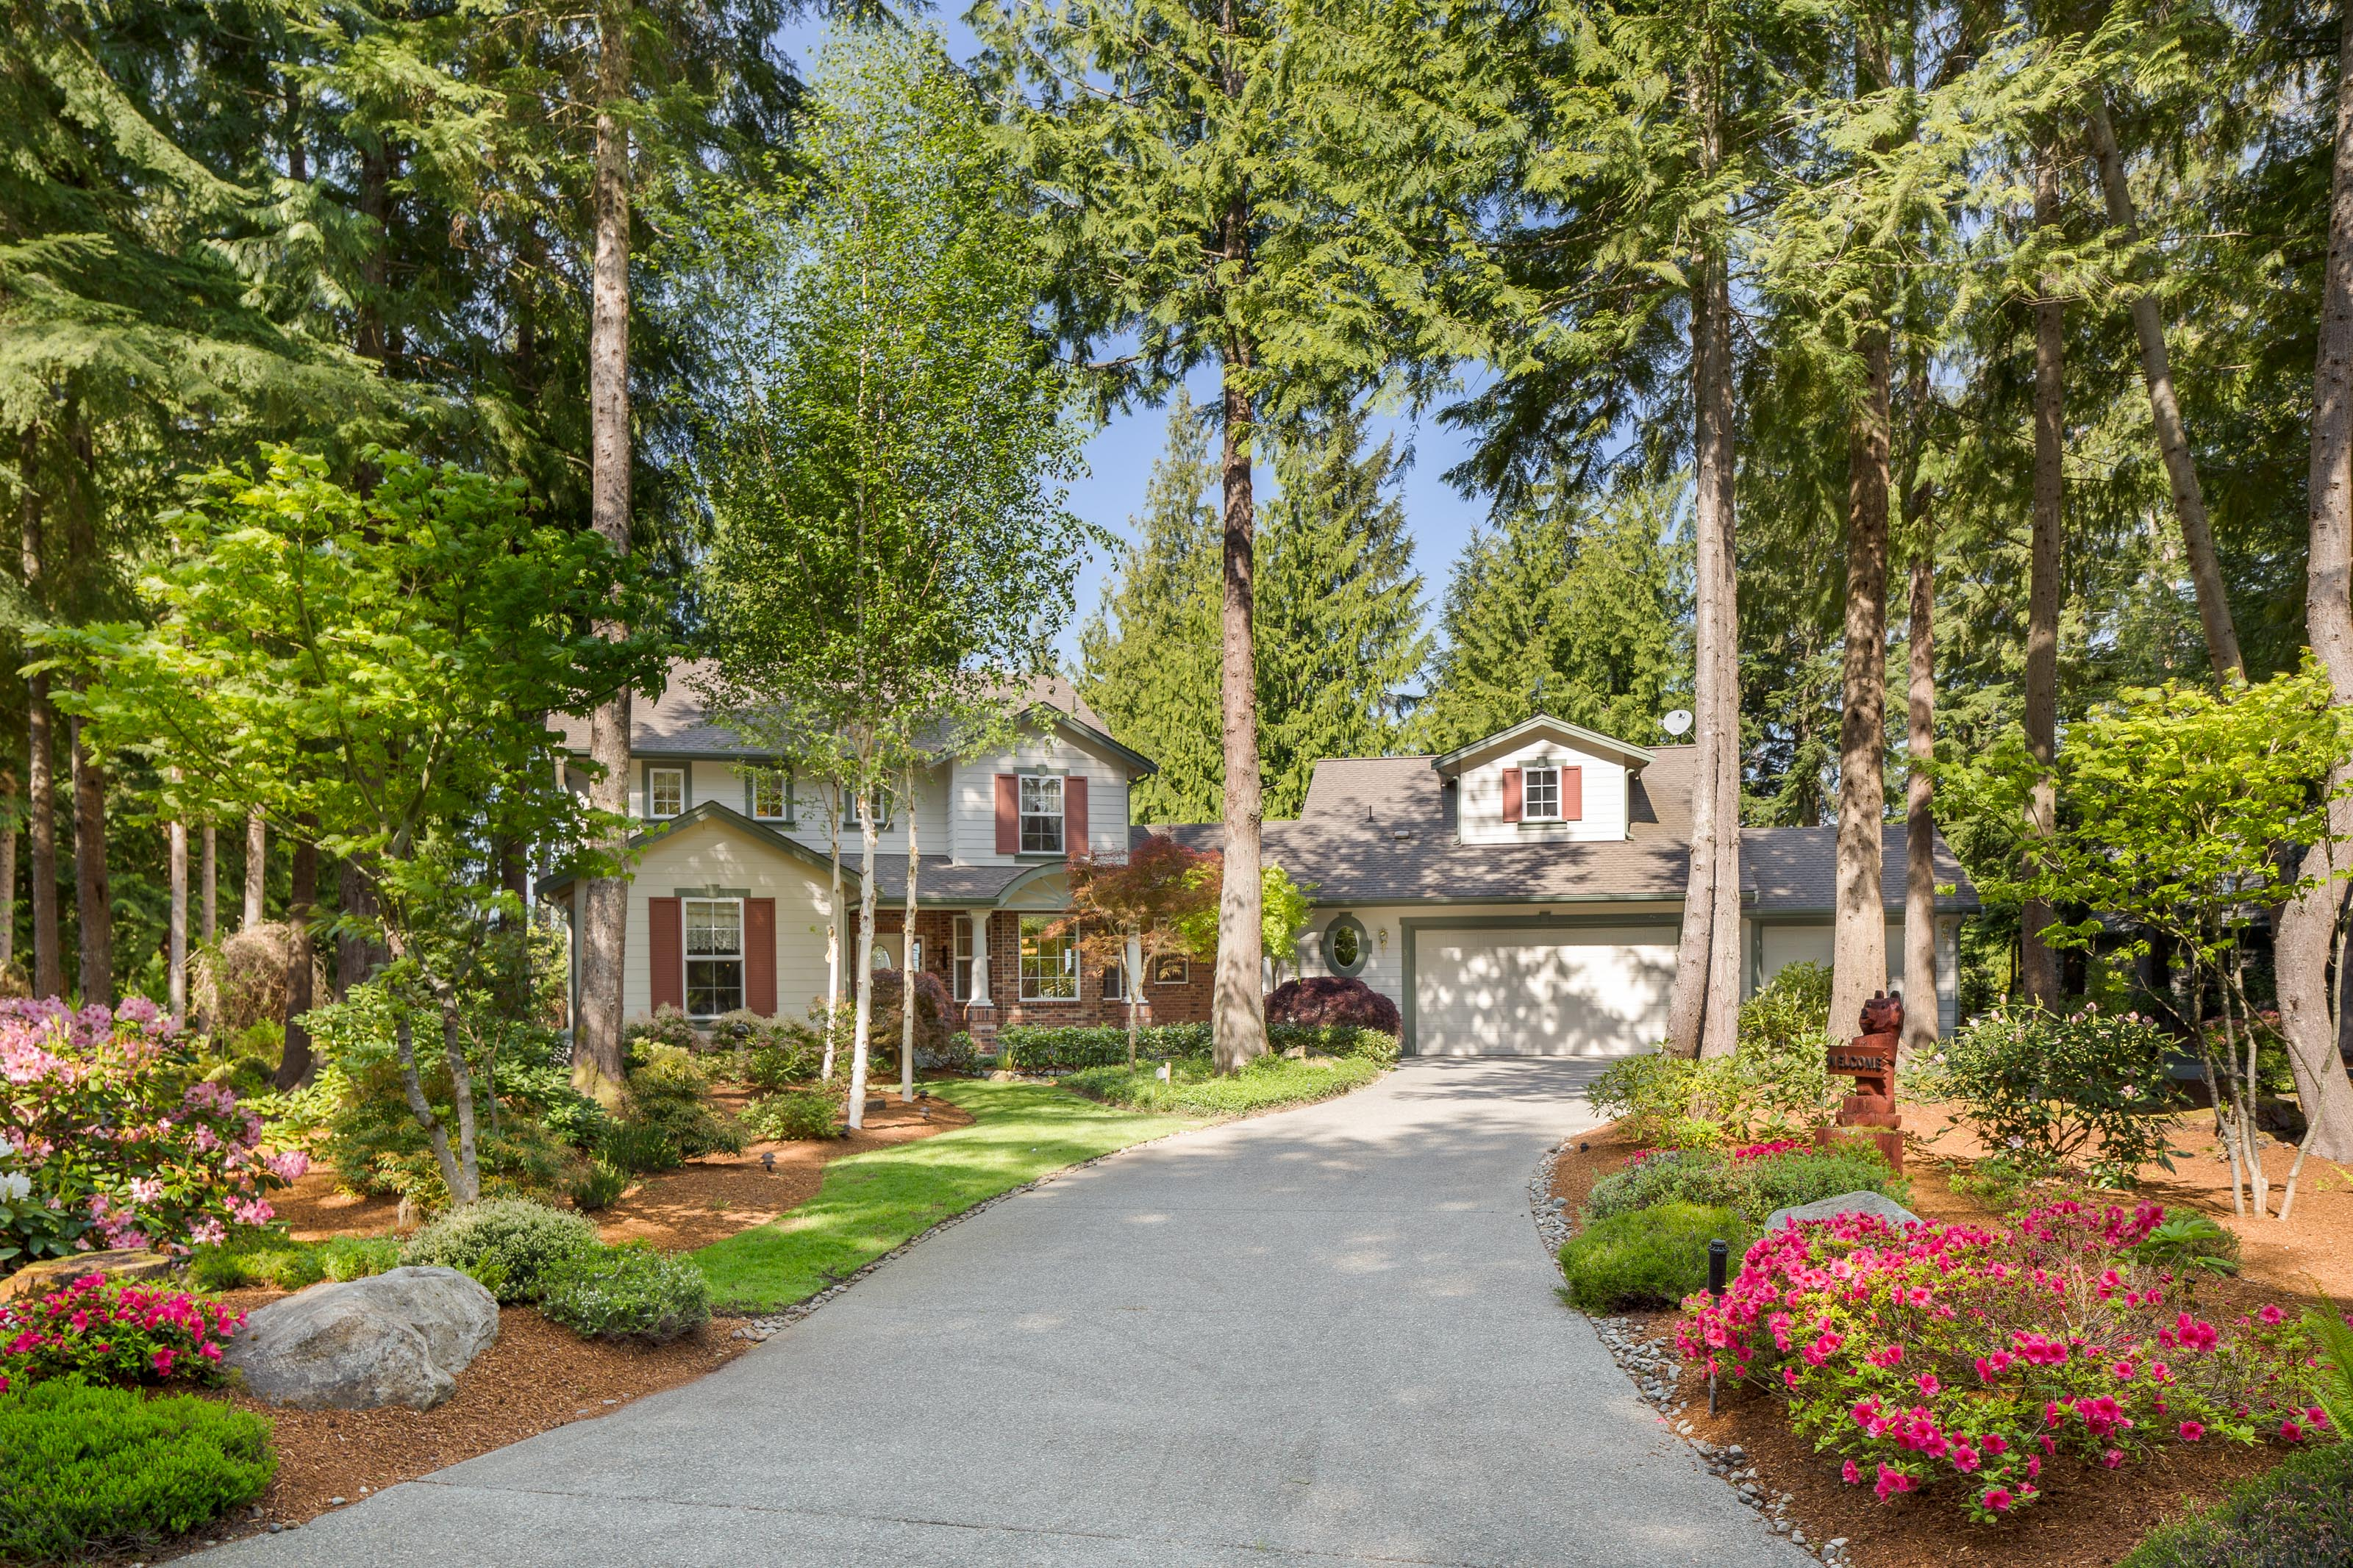 Property For Sale at Elegant Home in Port Ludlow